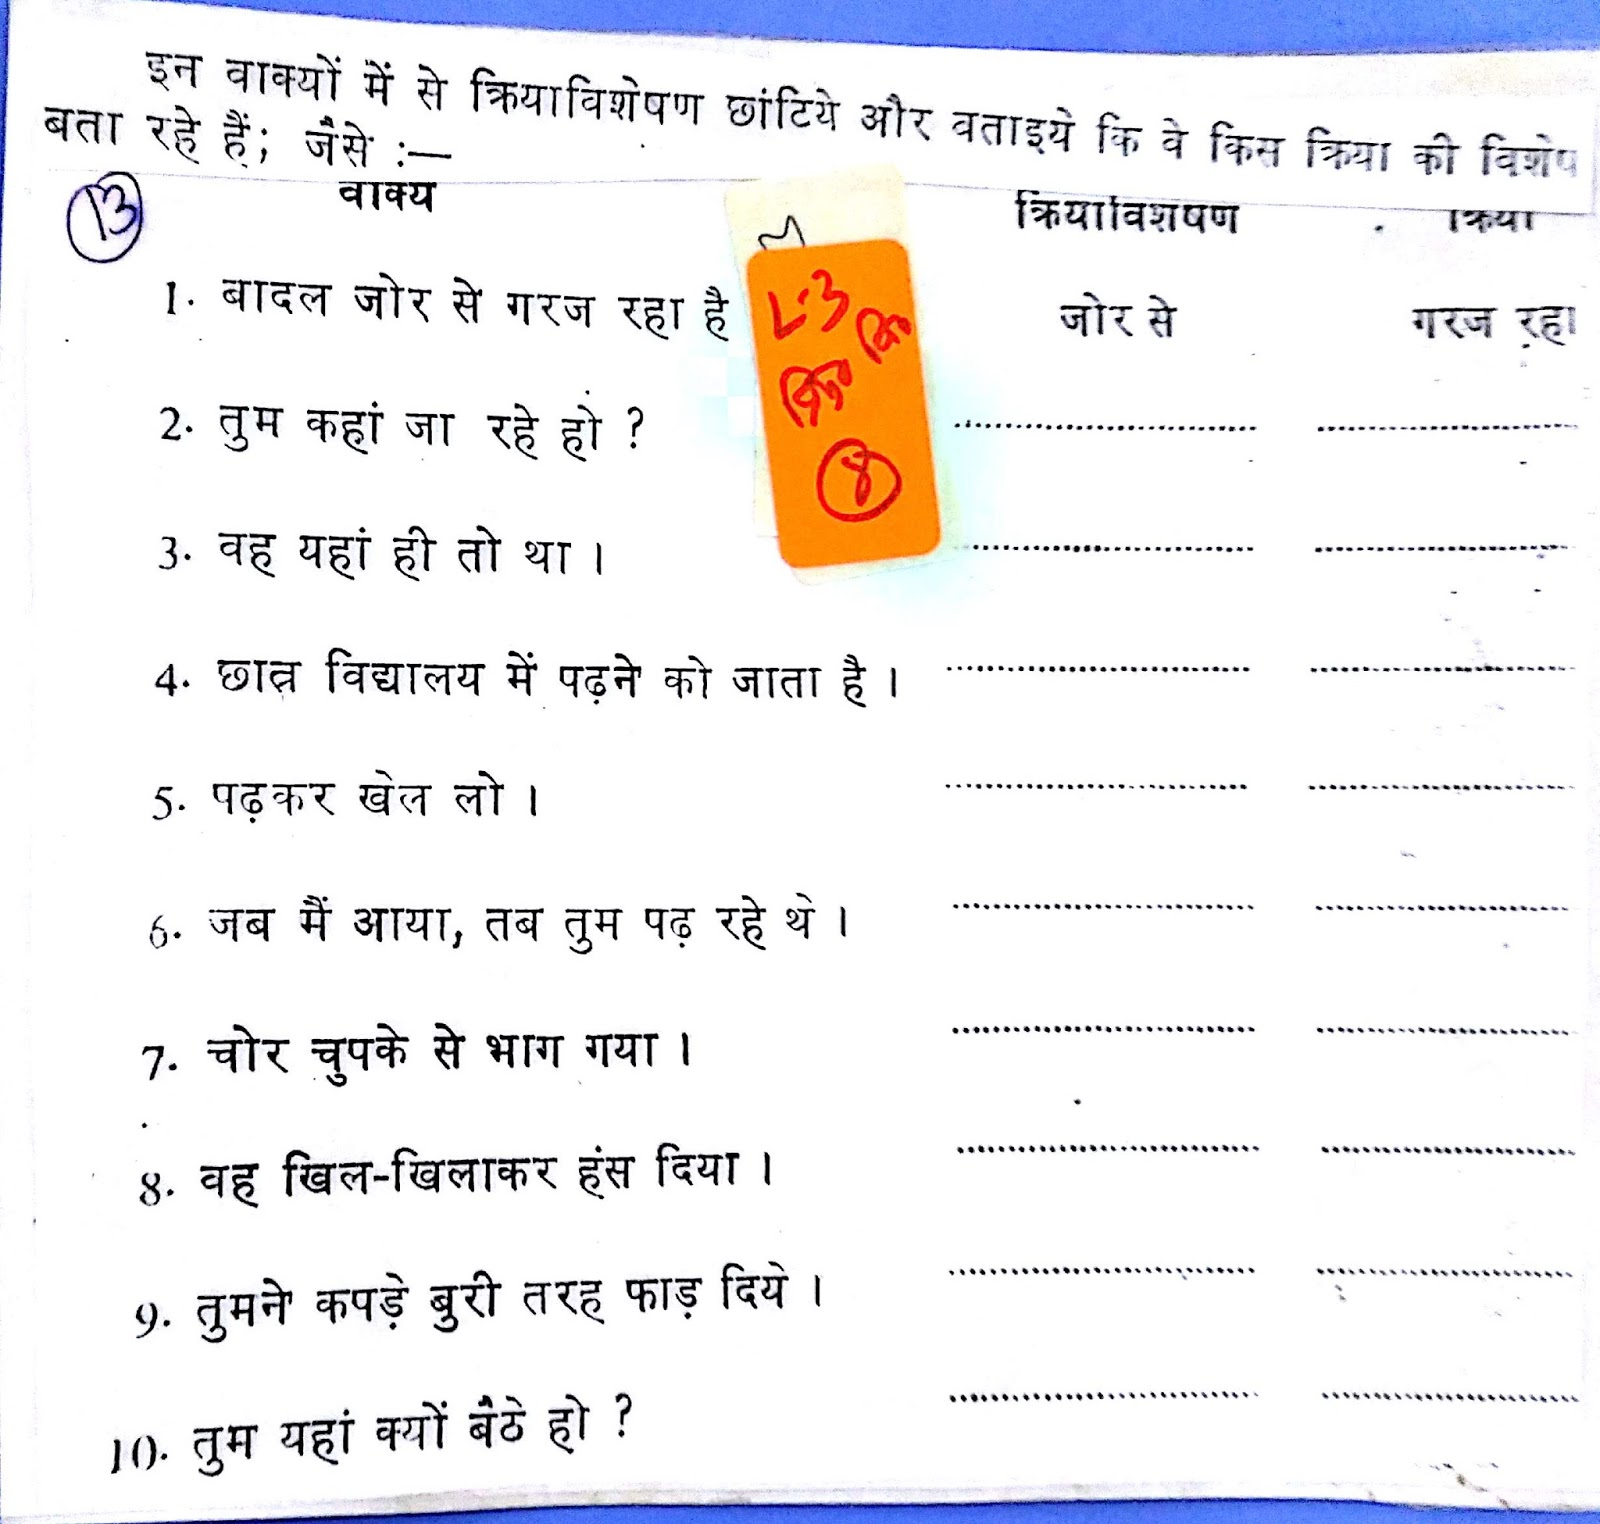 hight resolution of Answer Key Preposition Worksheets For Grade 2 With Answers - Leftwings